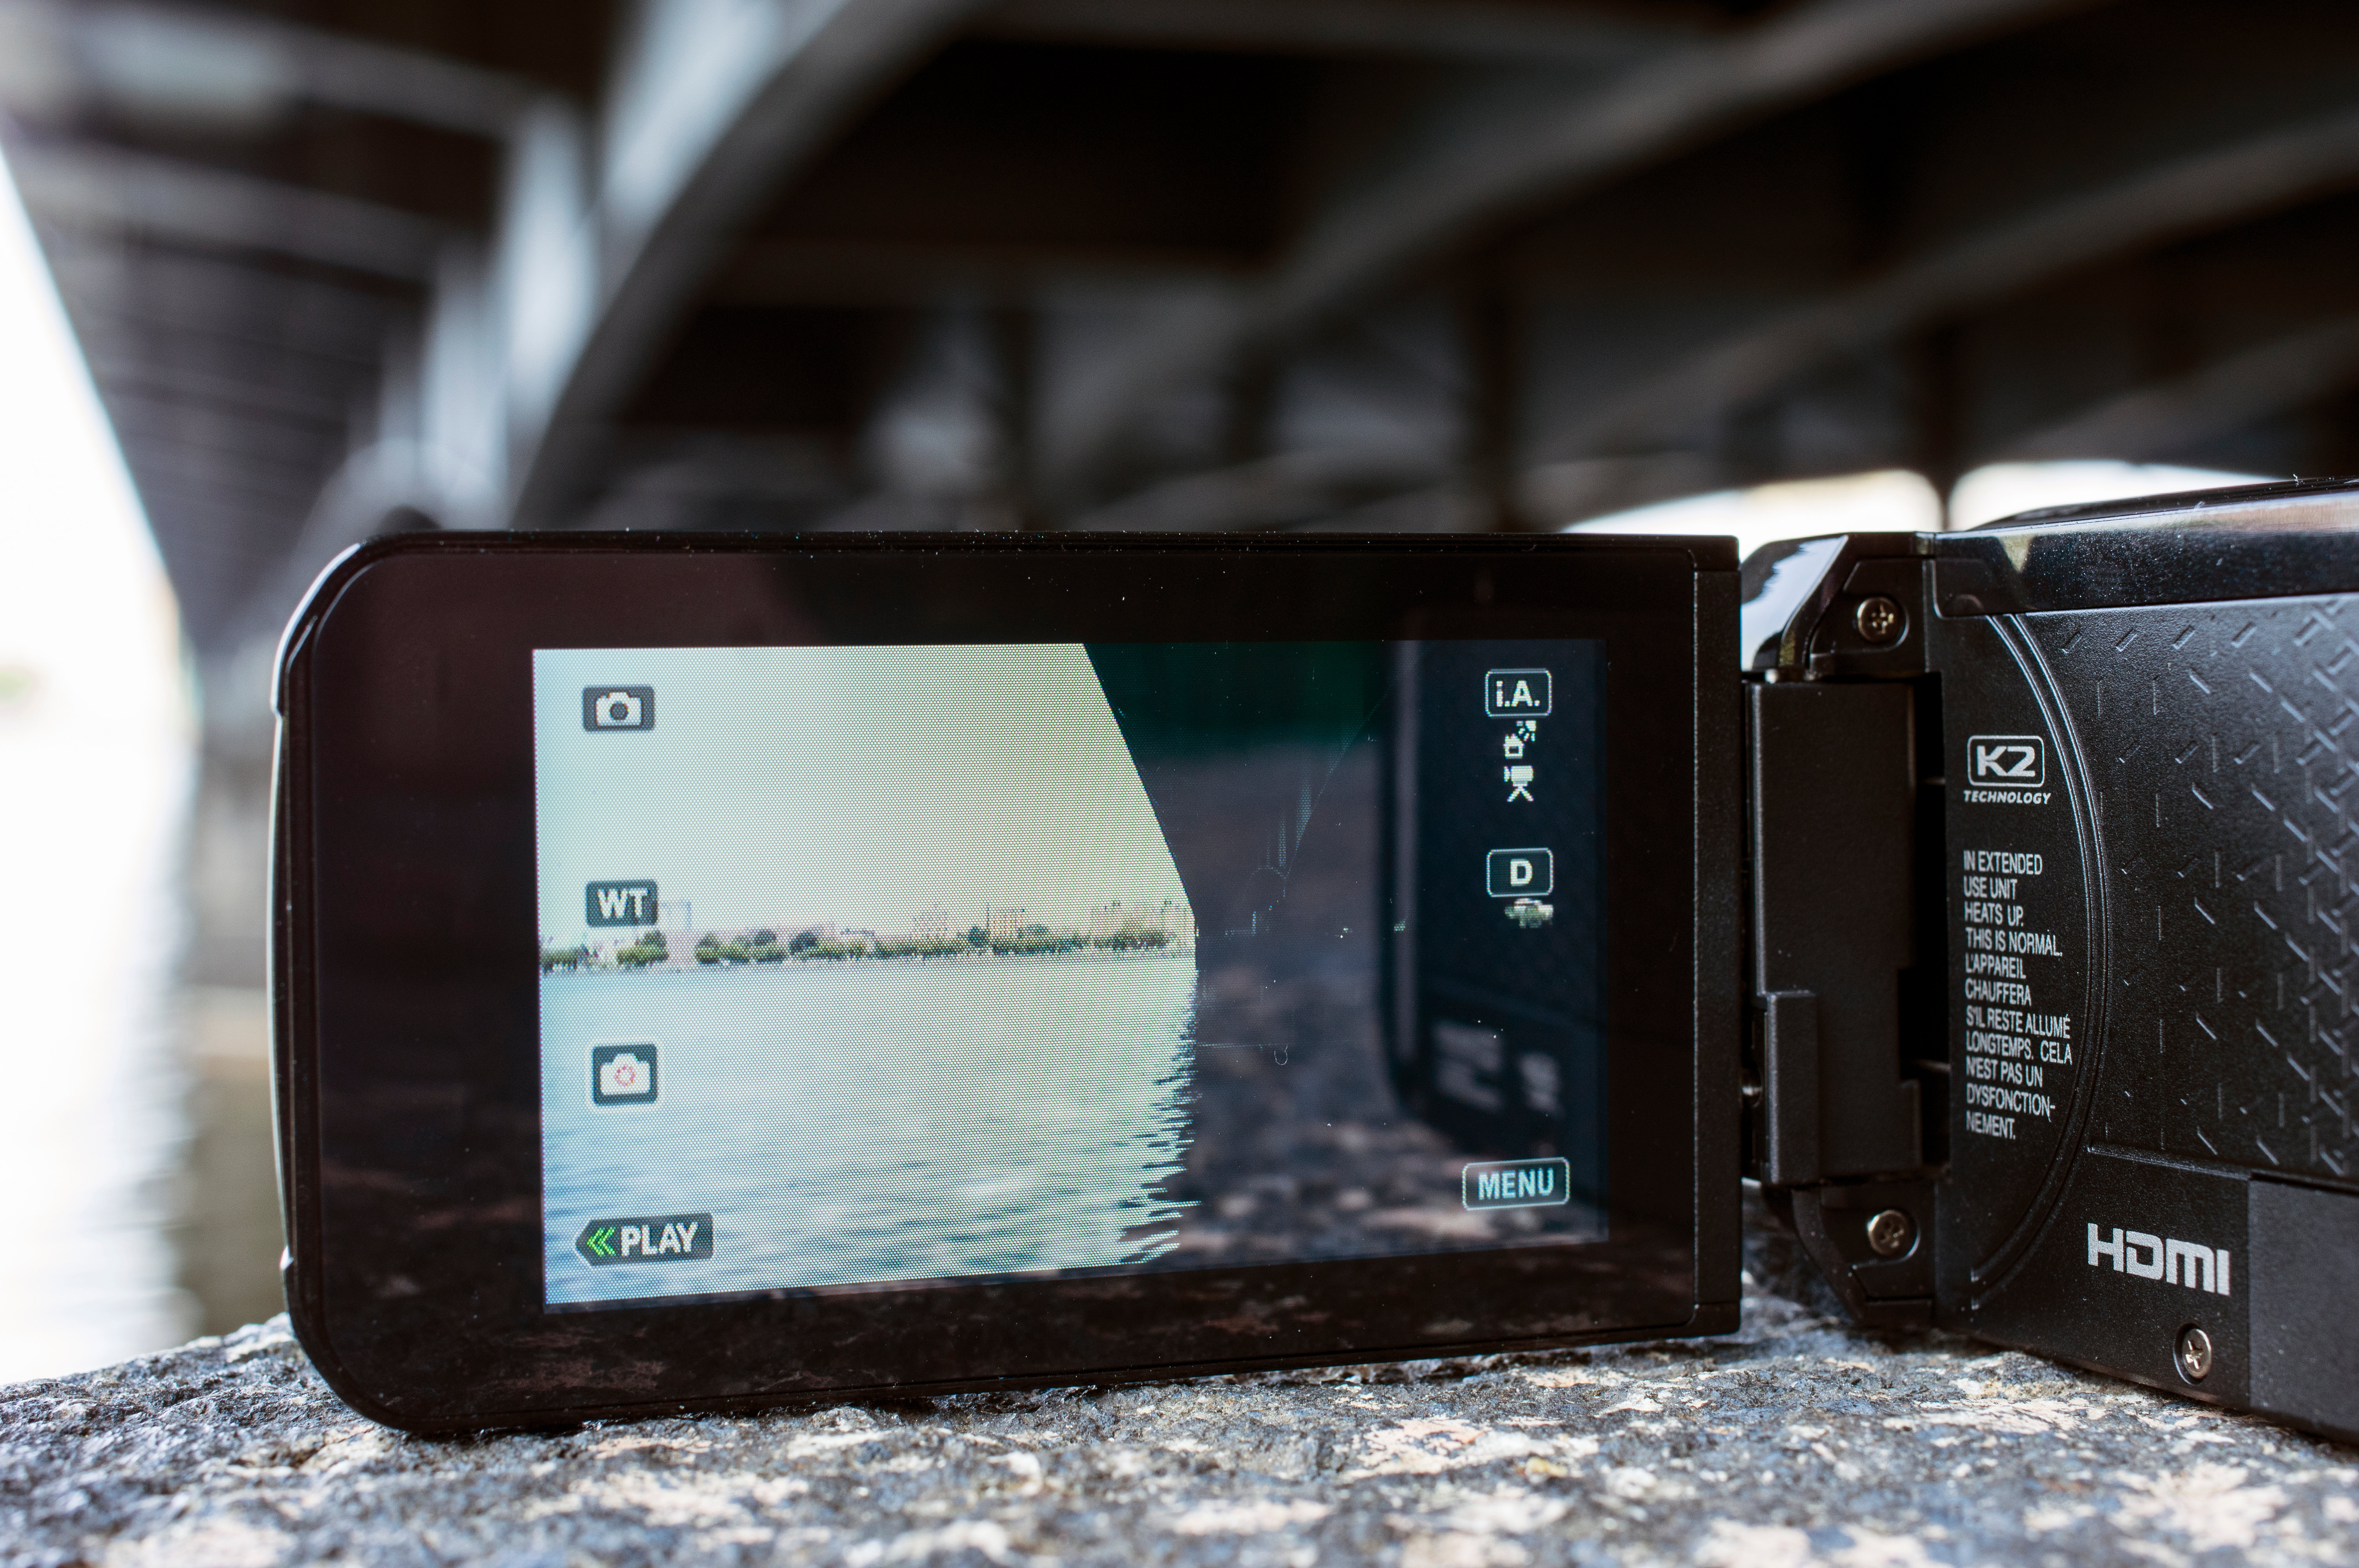 The JVC GZ-R10A has a 3-inch, 180 degree tilt, 230k pixel touch-screen LCD monitor.